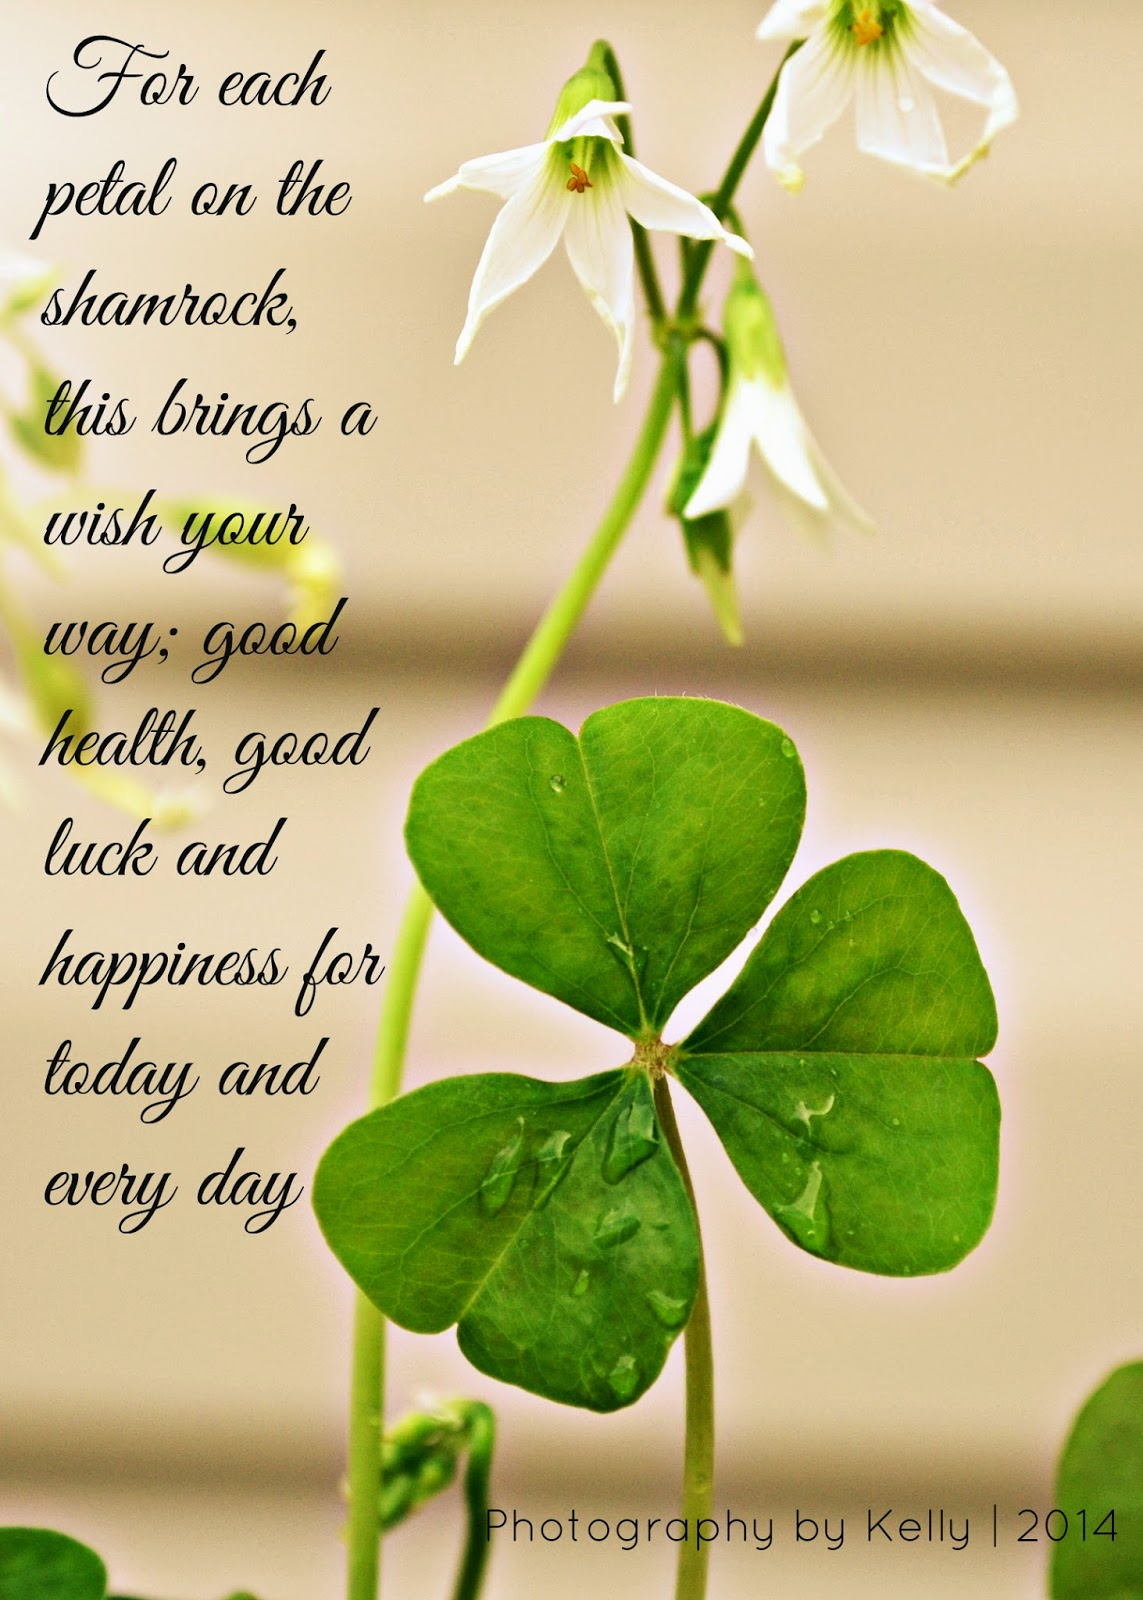 Uncategorized Legend Of The Shamrock living life in pa legend of the shamrock simple beauty this explanation convinced these skeptics and from that day has been revered throughout ireland